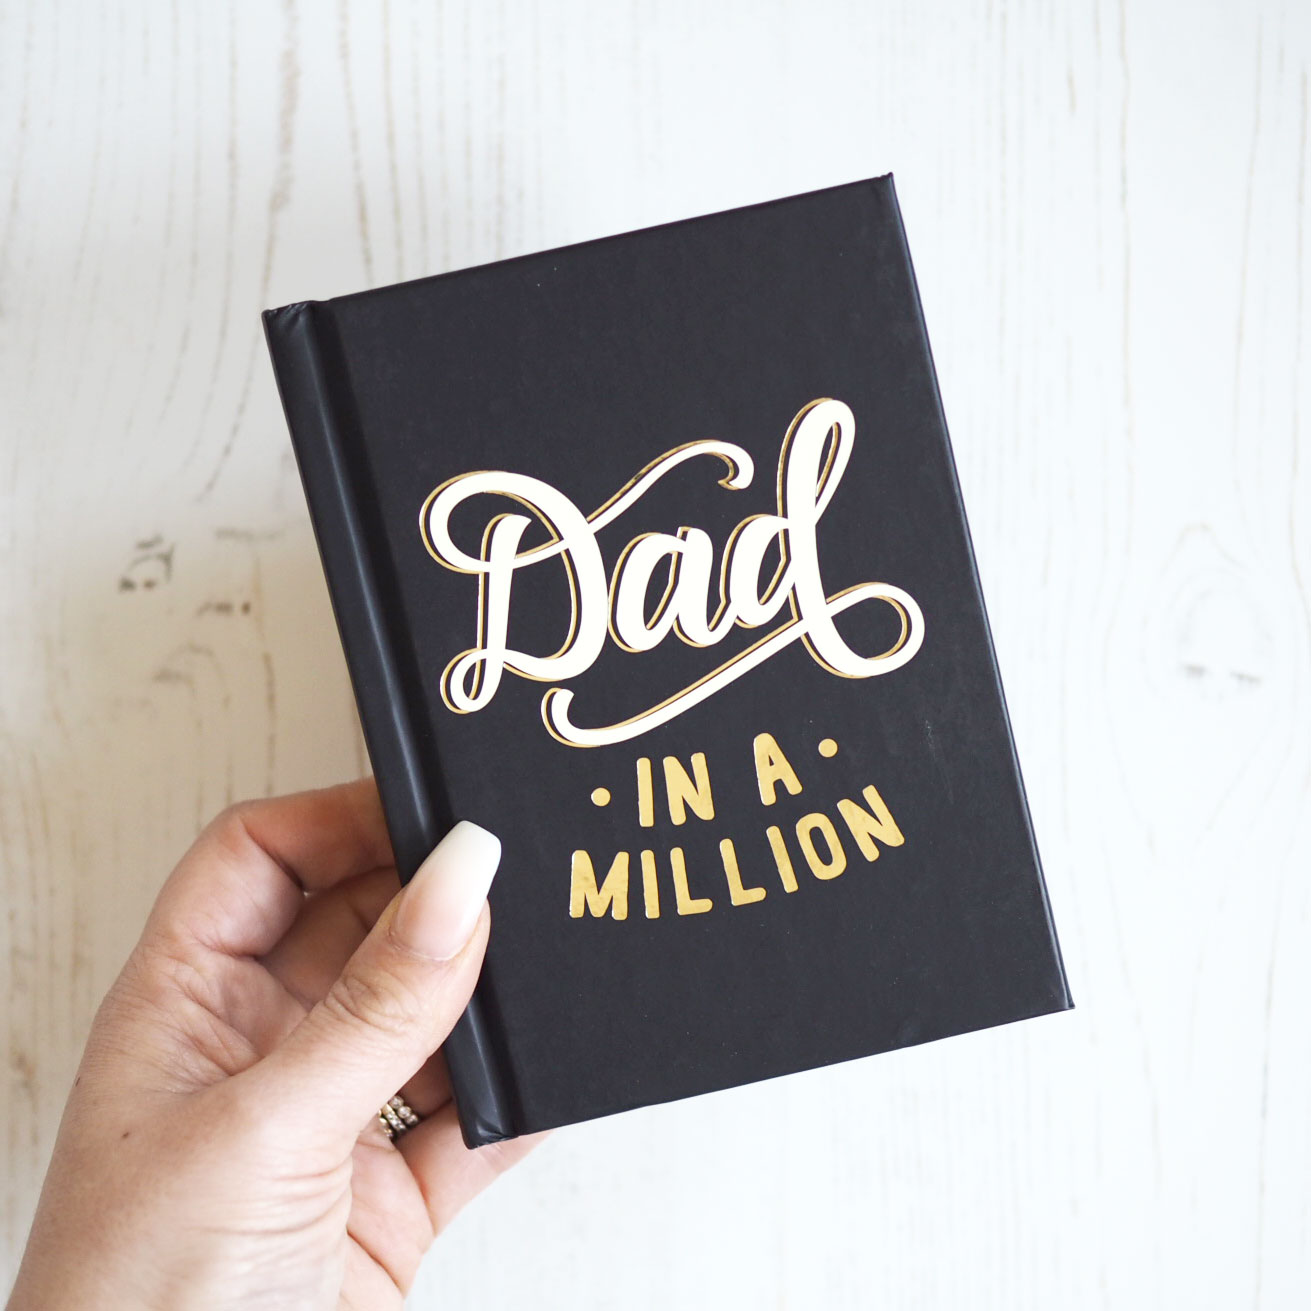 Dad in a Million book, £6.95